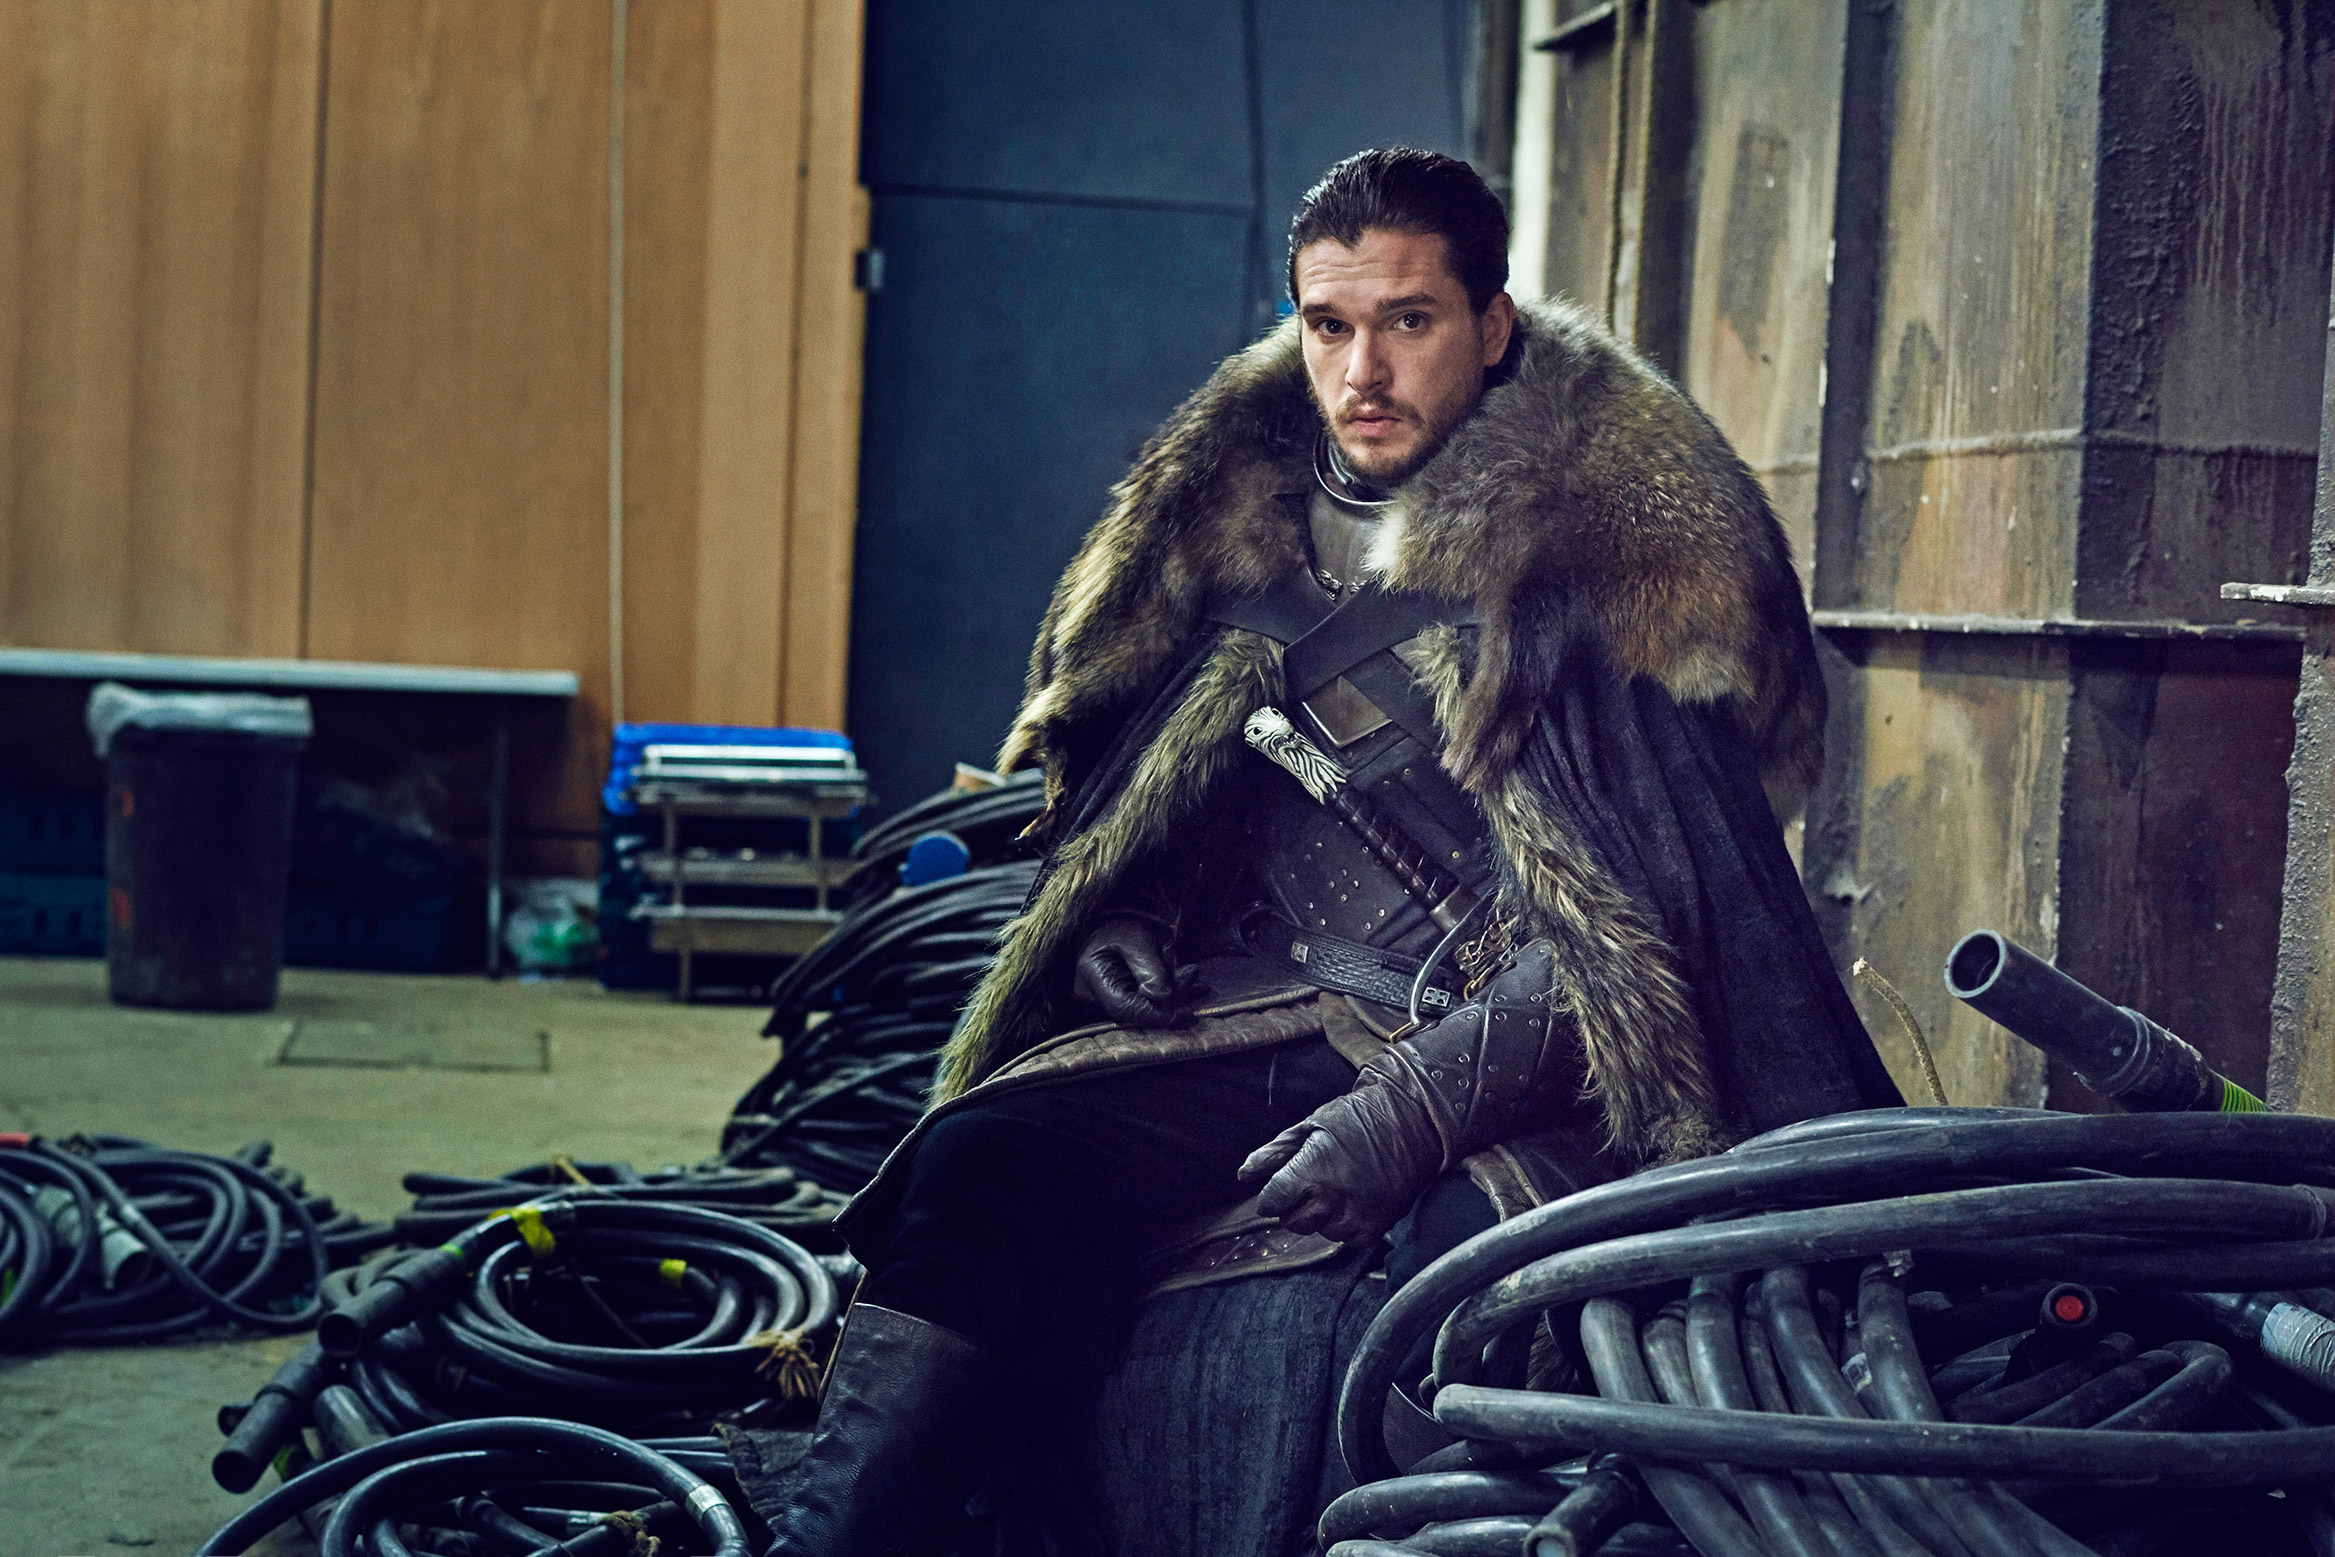 Jon Snow Game Of Thrones Set Photo, HD Tv Shows, 4k